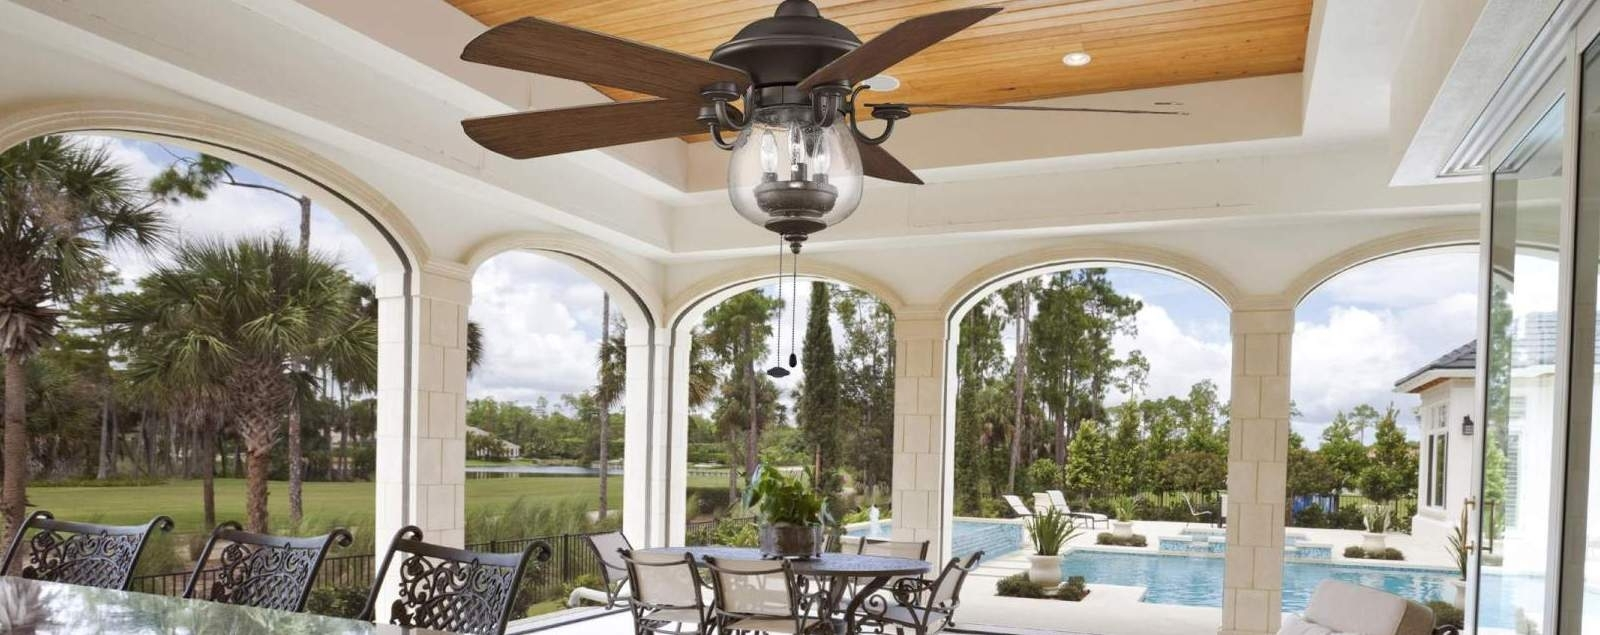 Outdoor Ceiling Fans With Lights Damp Rated Within Most Up To Date Outdoor Ceiling Fans – Shop Wet, Dry, And Damp Rated Outdoor Fans (View 14 of 20)